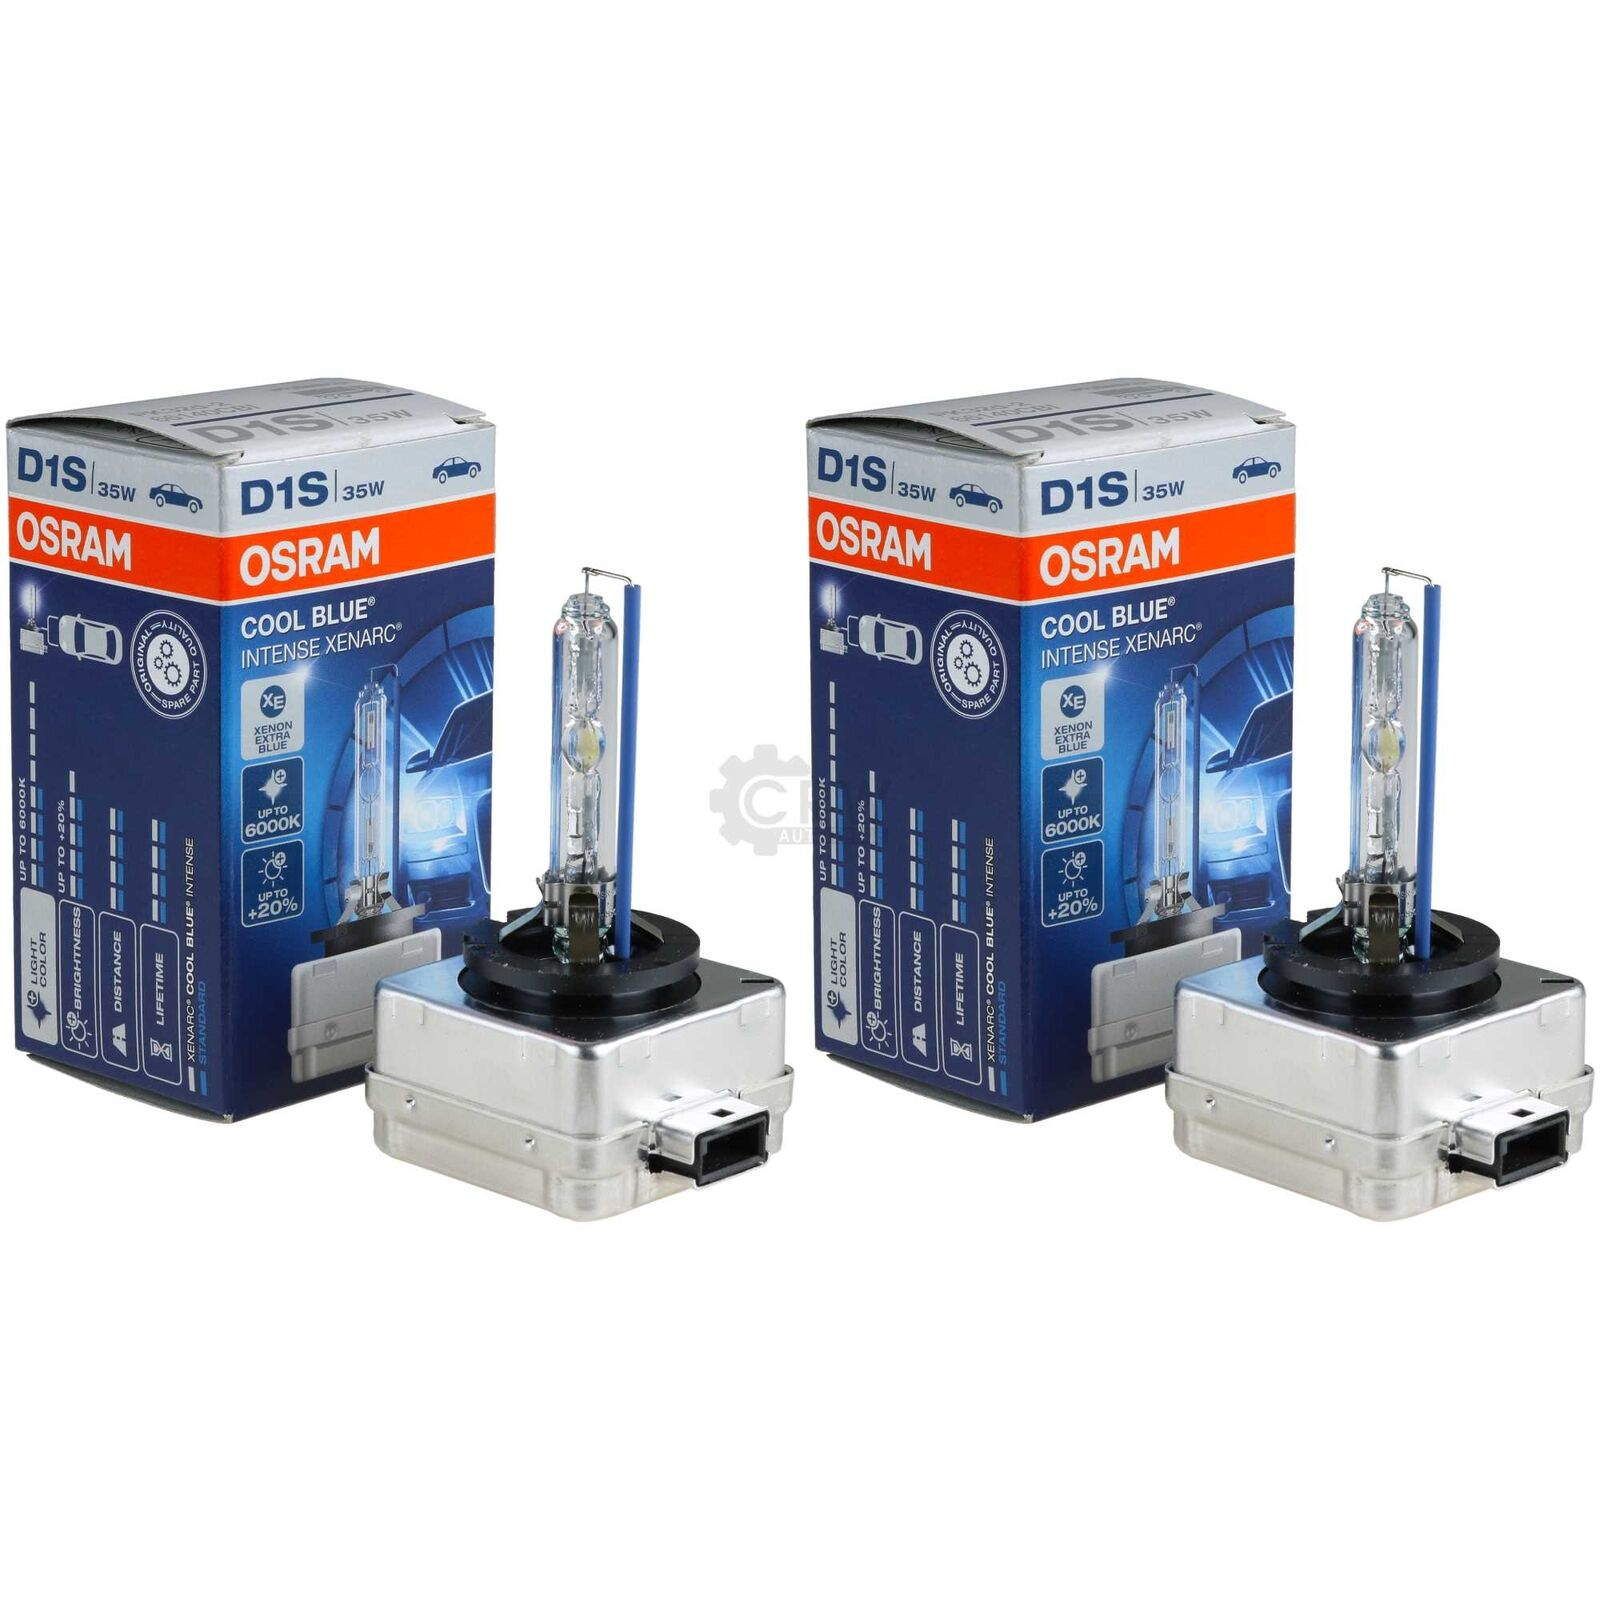 2x Osram D1s D2s D3s D4s W5w Night Breaker Unlimited Cool Blue Xenon Bulbs CLC